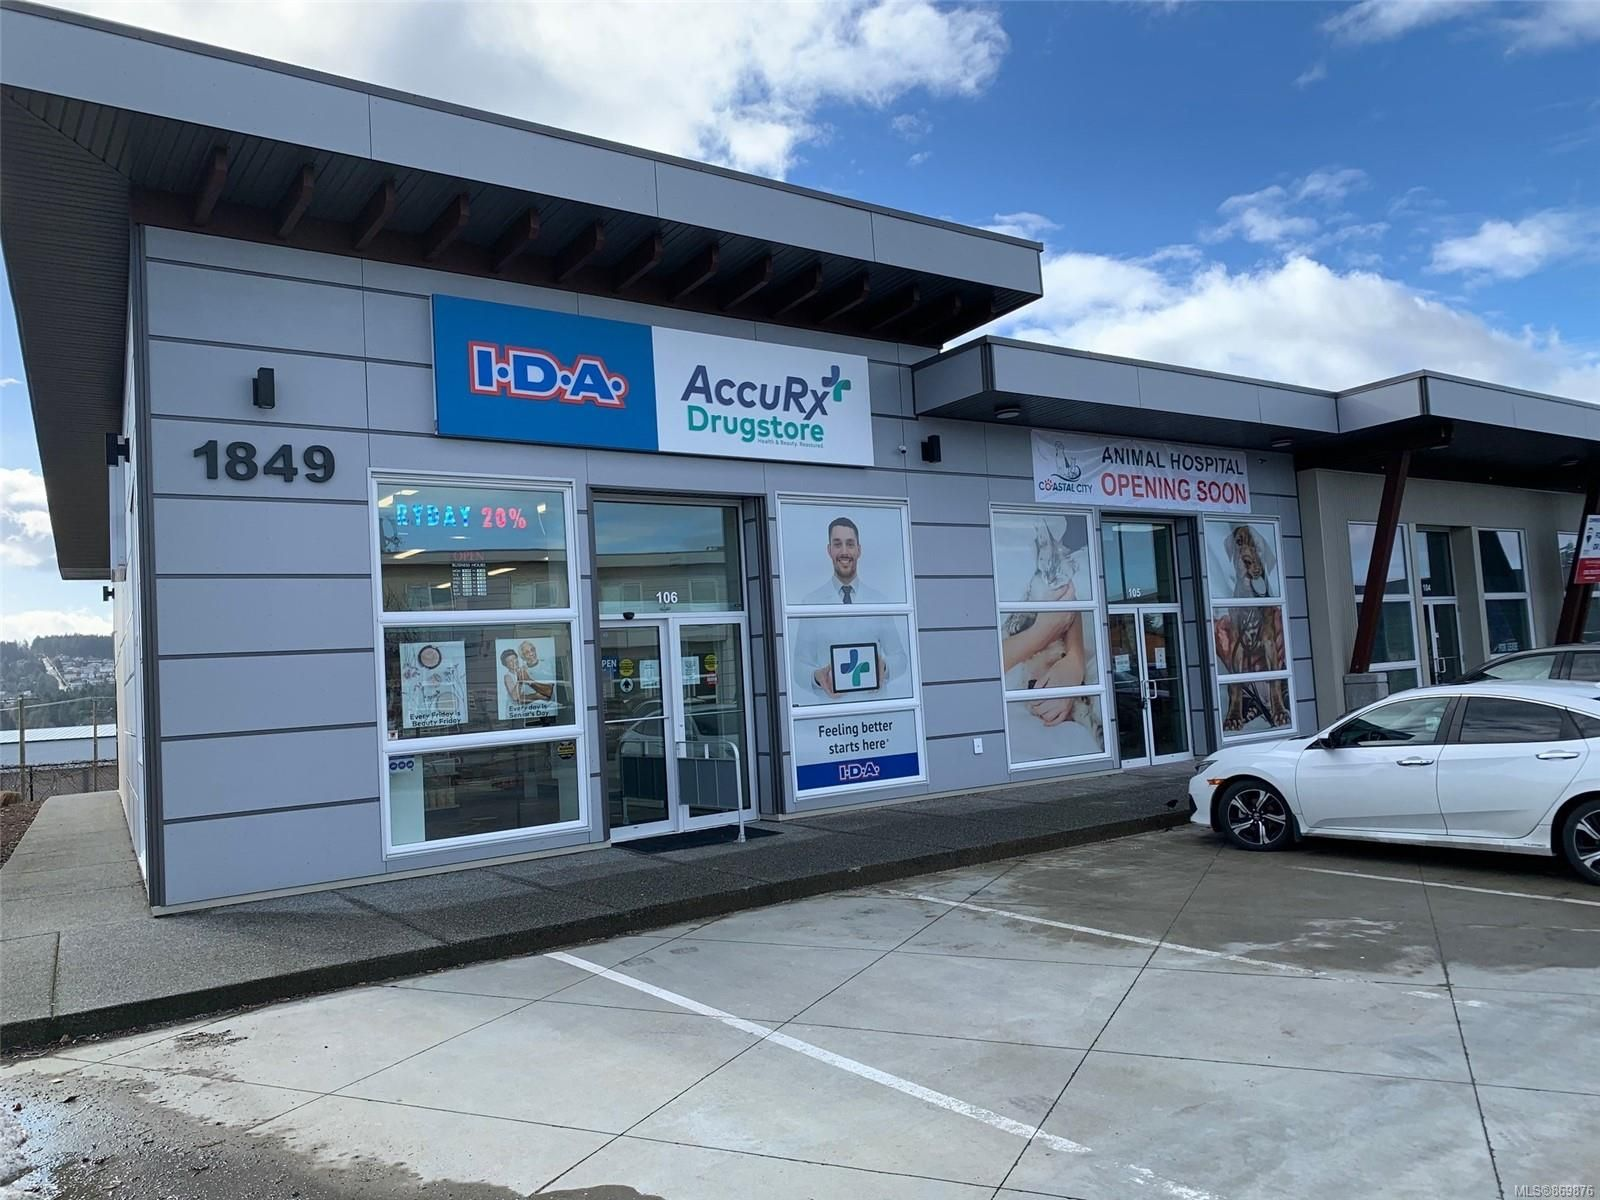 Main Photo: 102 1849 Dufferin Cres in : Na Central Nanaimo Mixed Use for lease (Nanaimo)  : MLS®# 869876